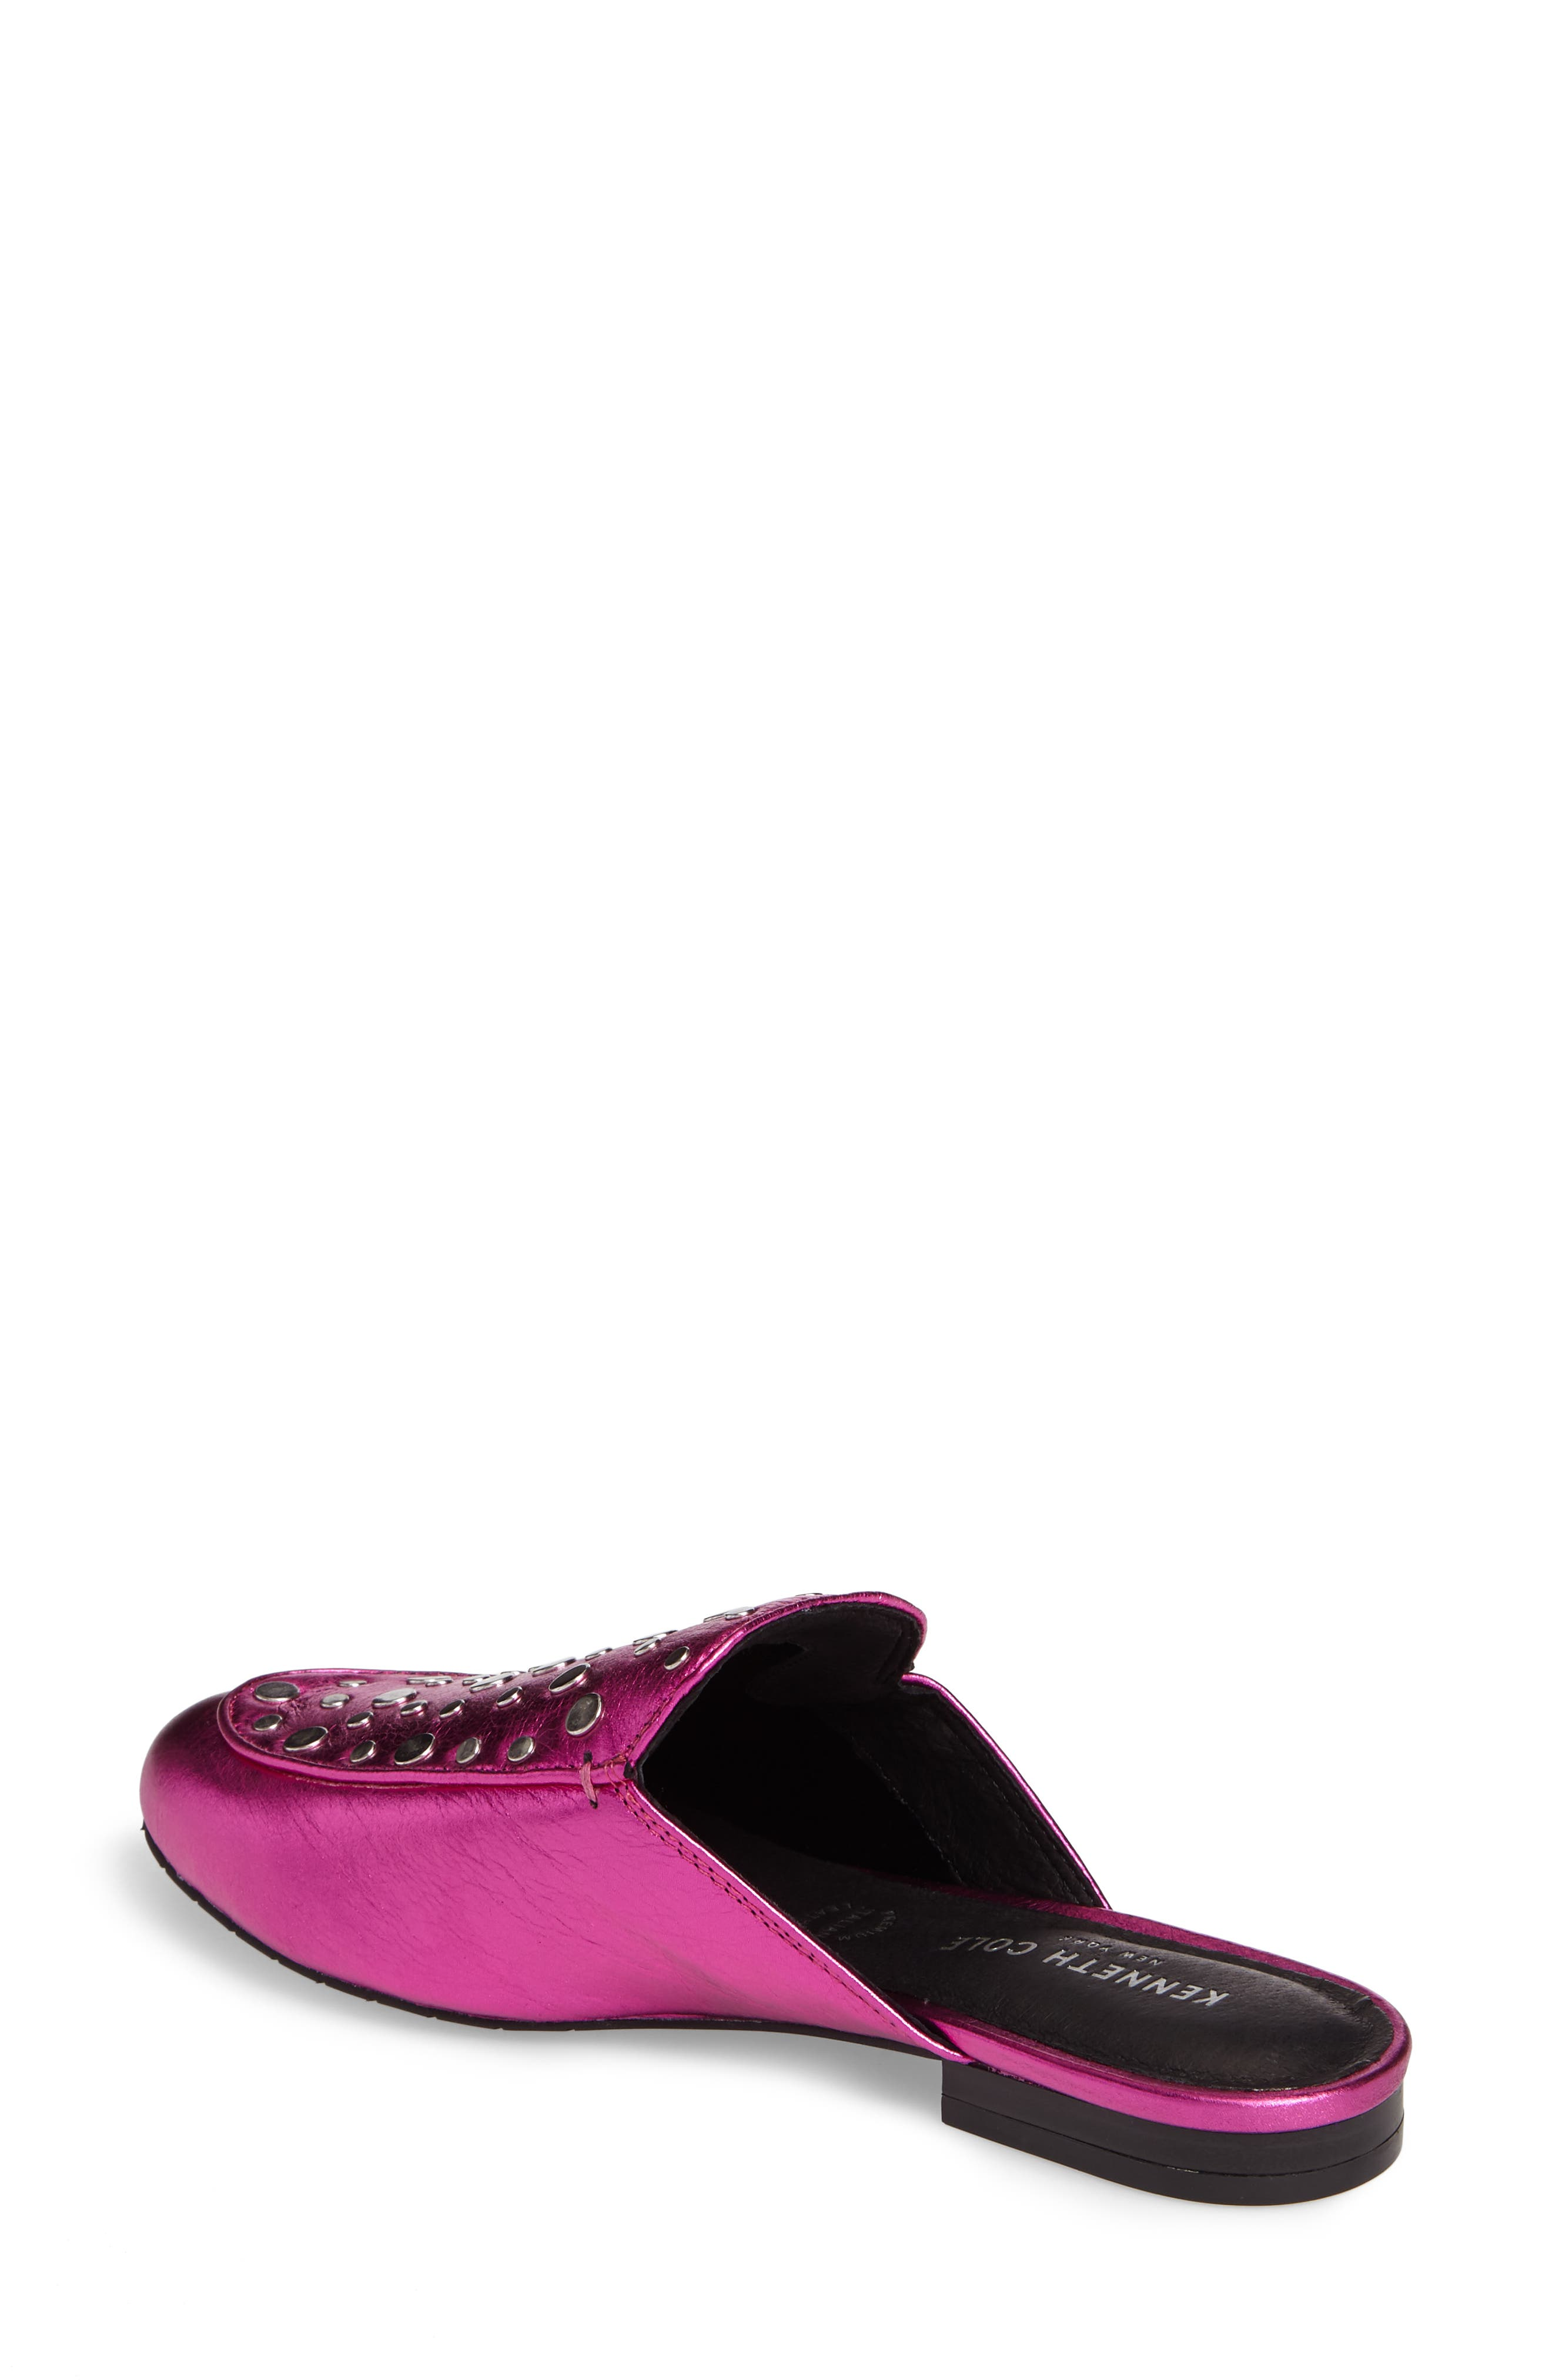 Wynter Studded Loafer,                             Alternate thumbnail 2, color,                             551